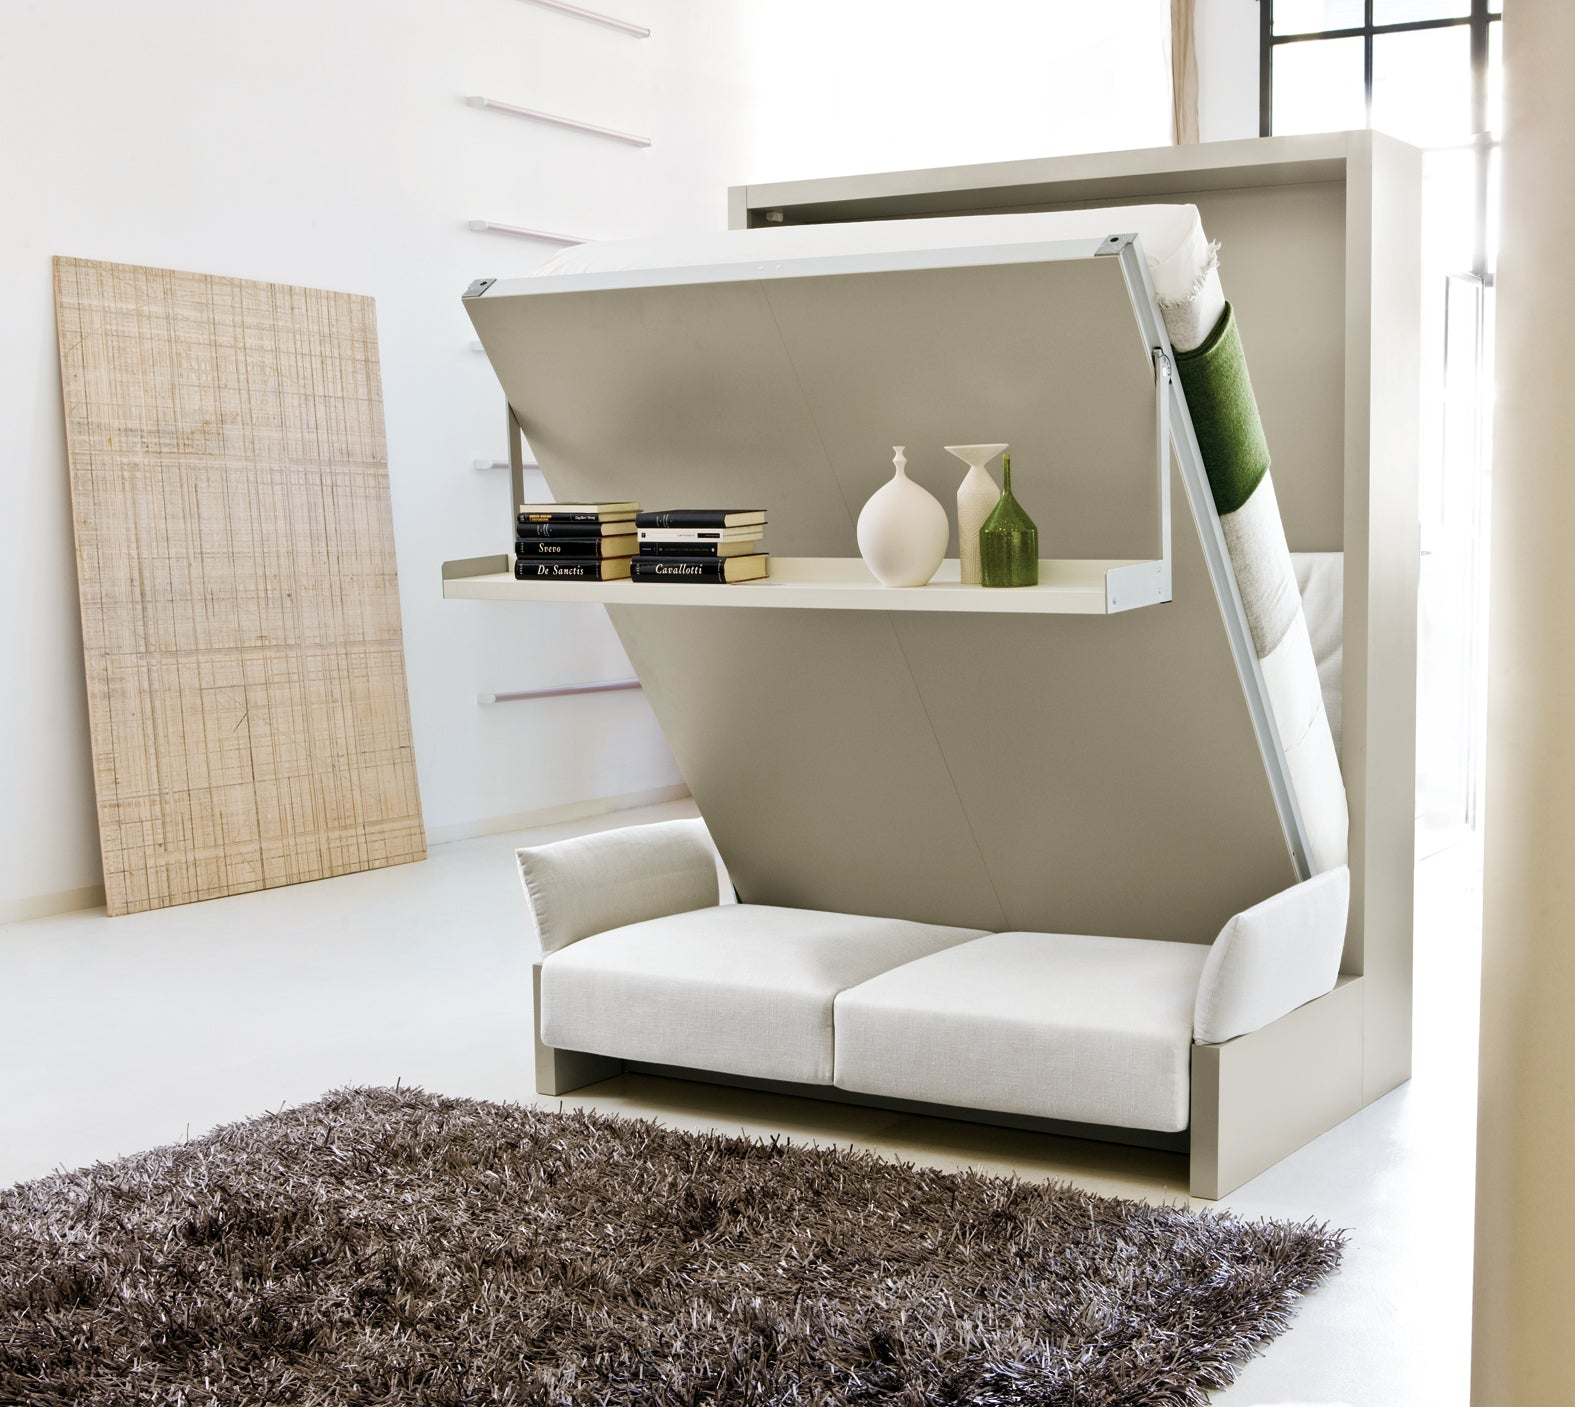 Space saving fold out bed and sofa combination in cream